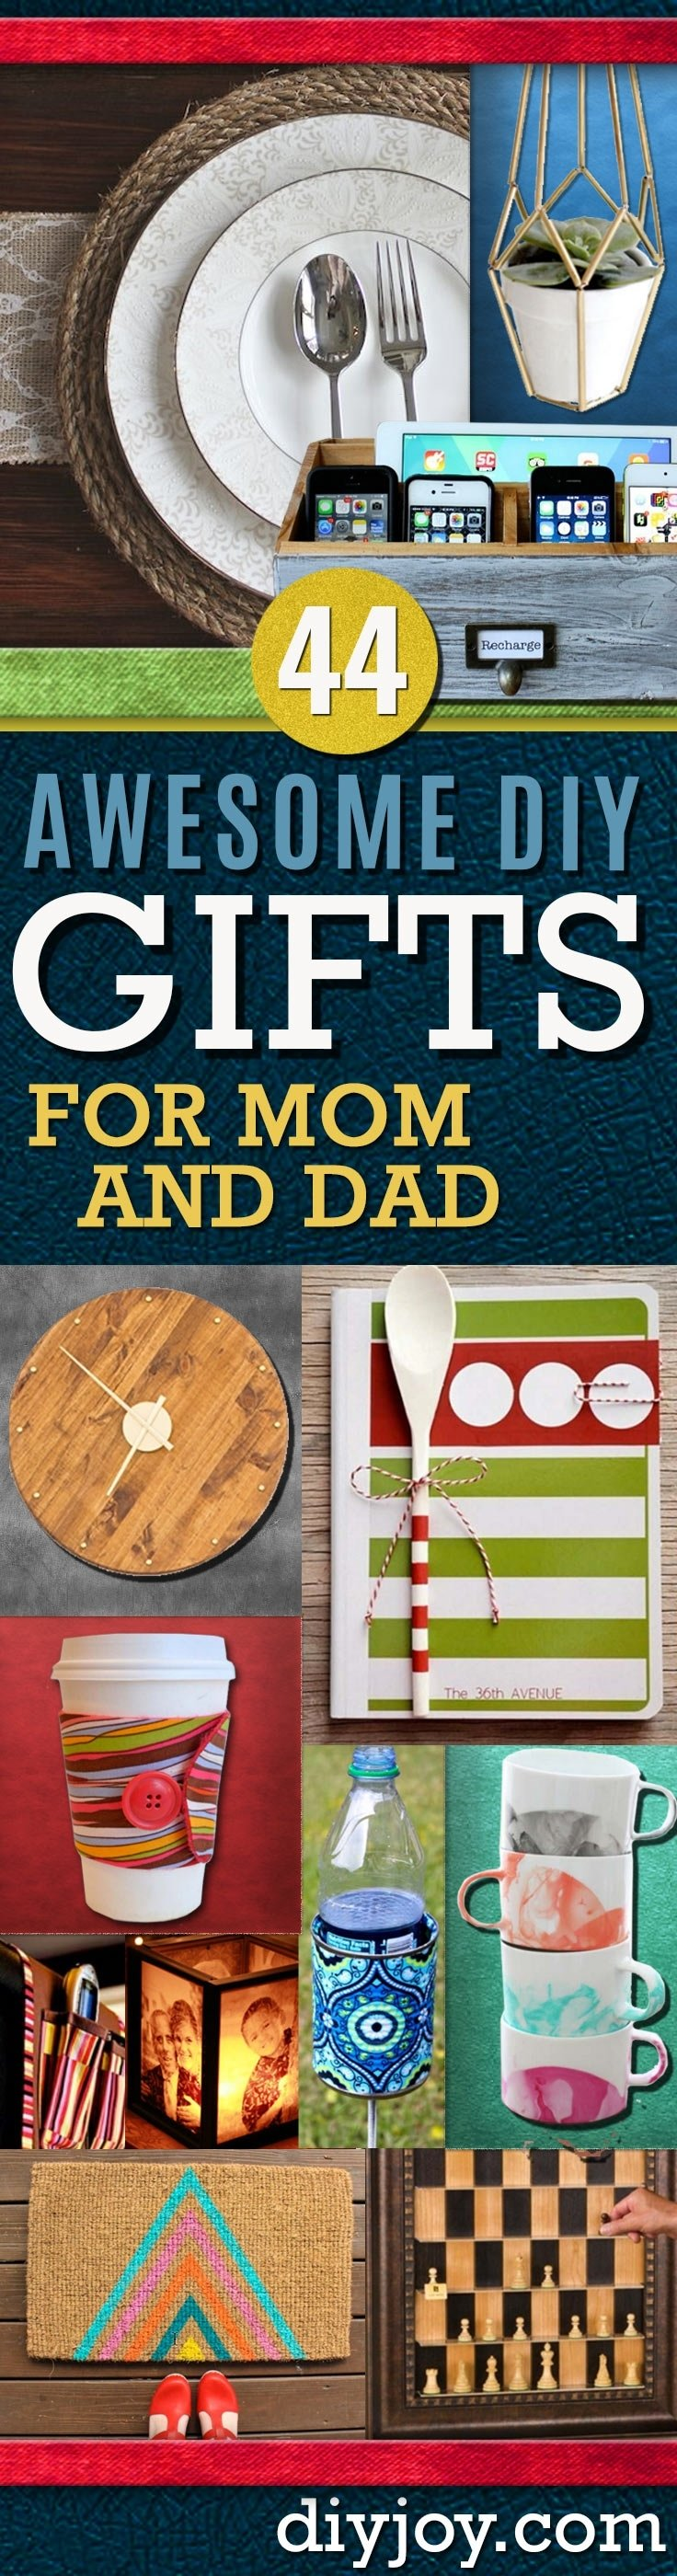 10 Elegant Xmas Gift Ideas For Dad awesome diy gift ideas mom and dad will love 30 2020